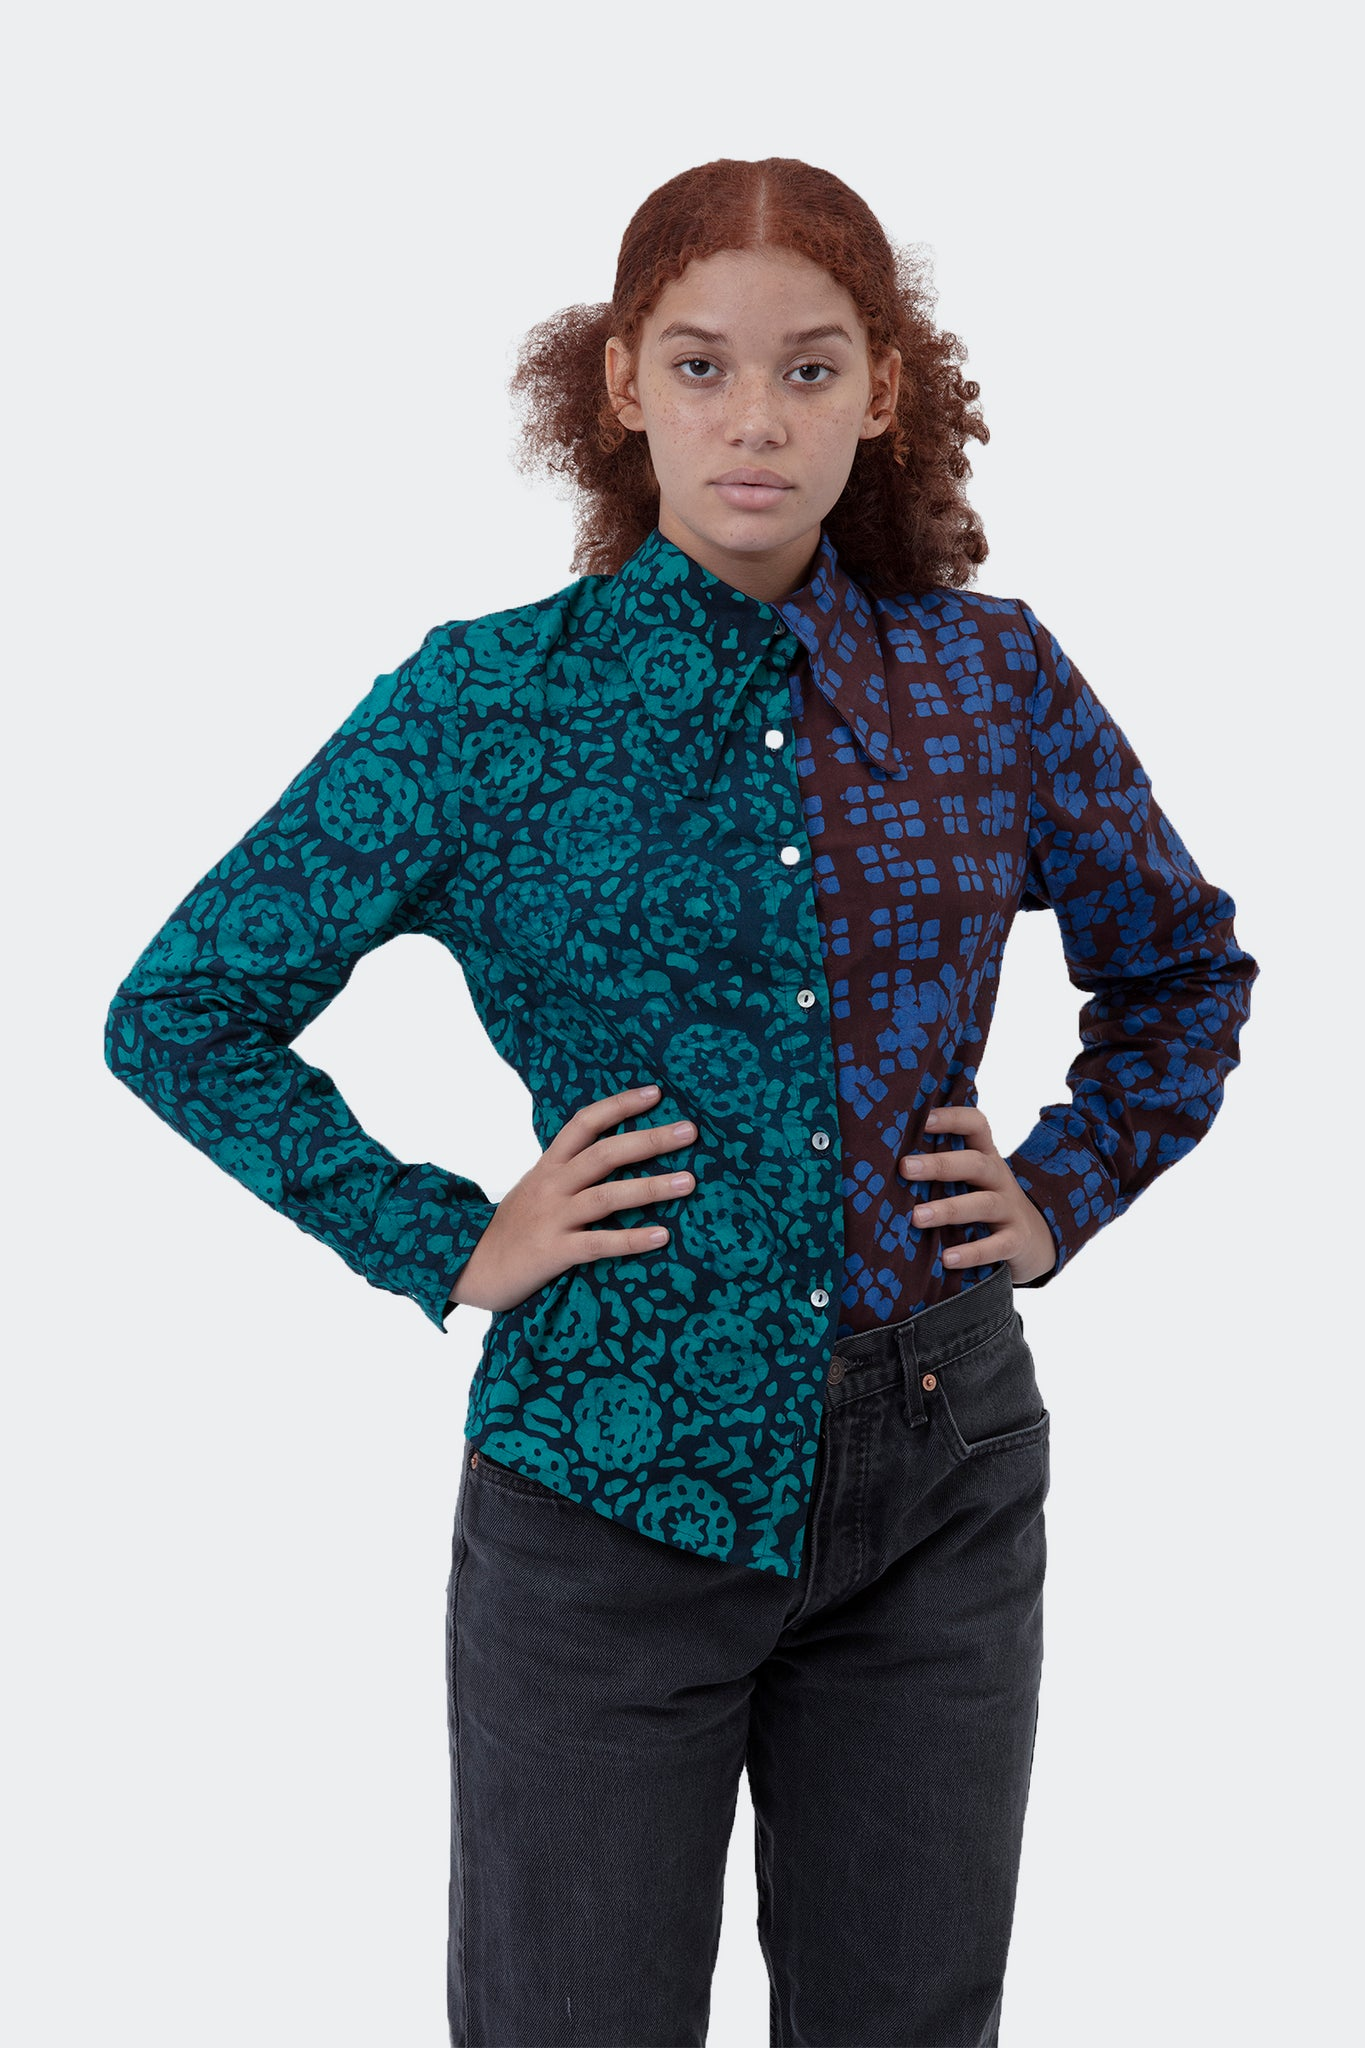 AW19 Del 3 - Everywhere Blouse in Shalott/Sub Combo